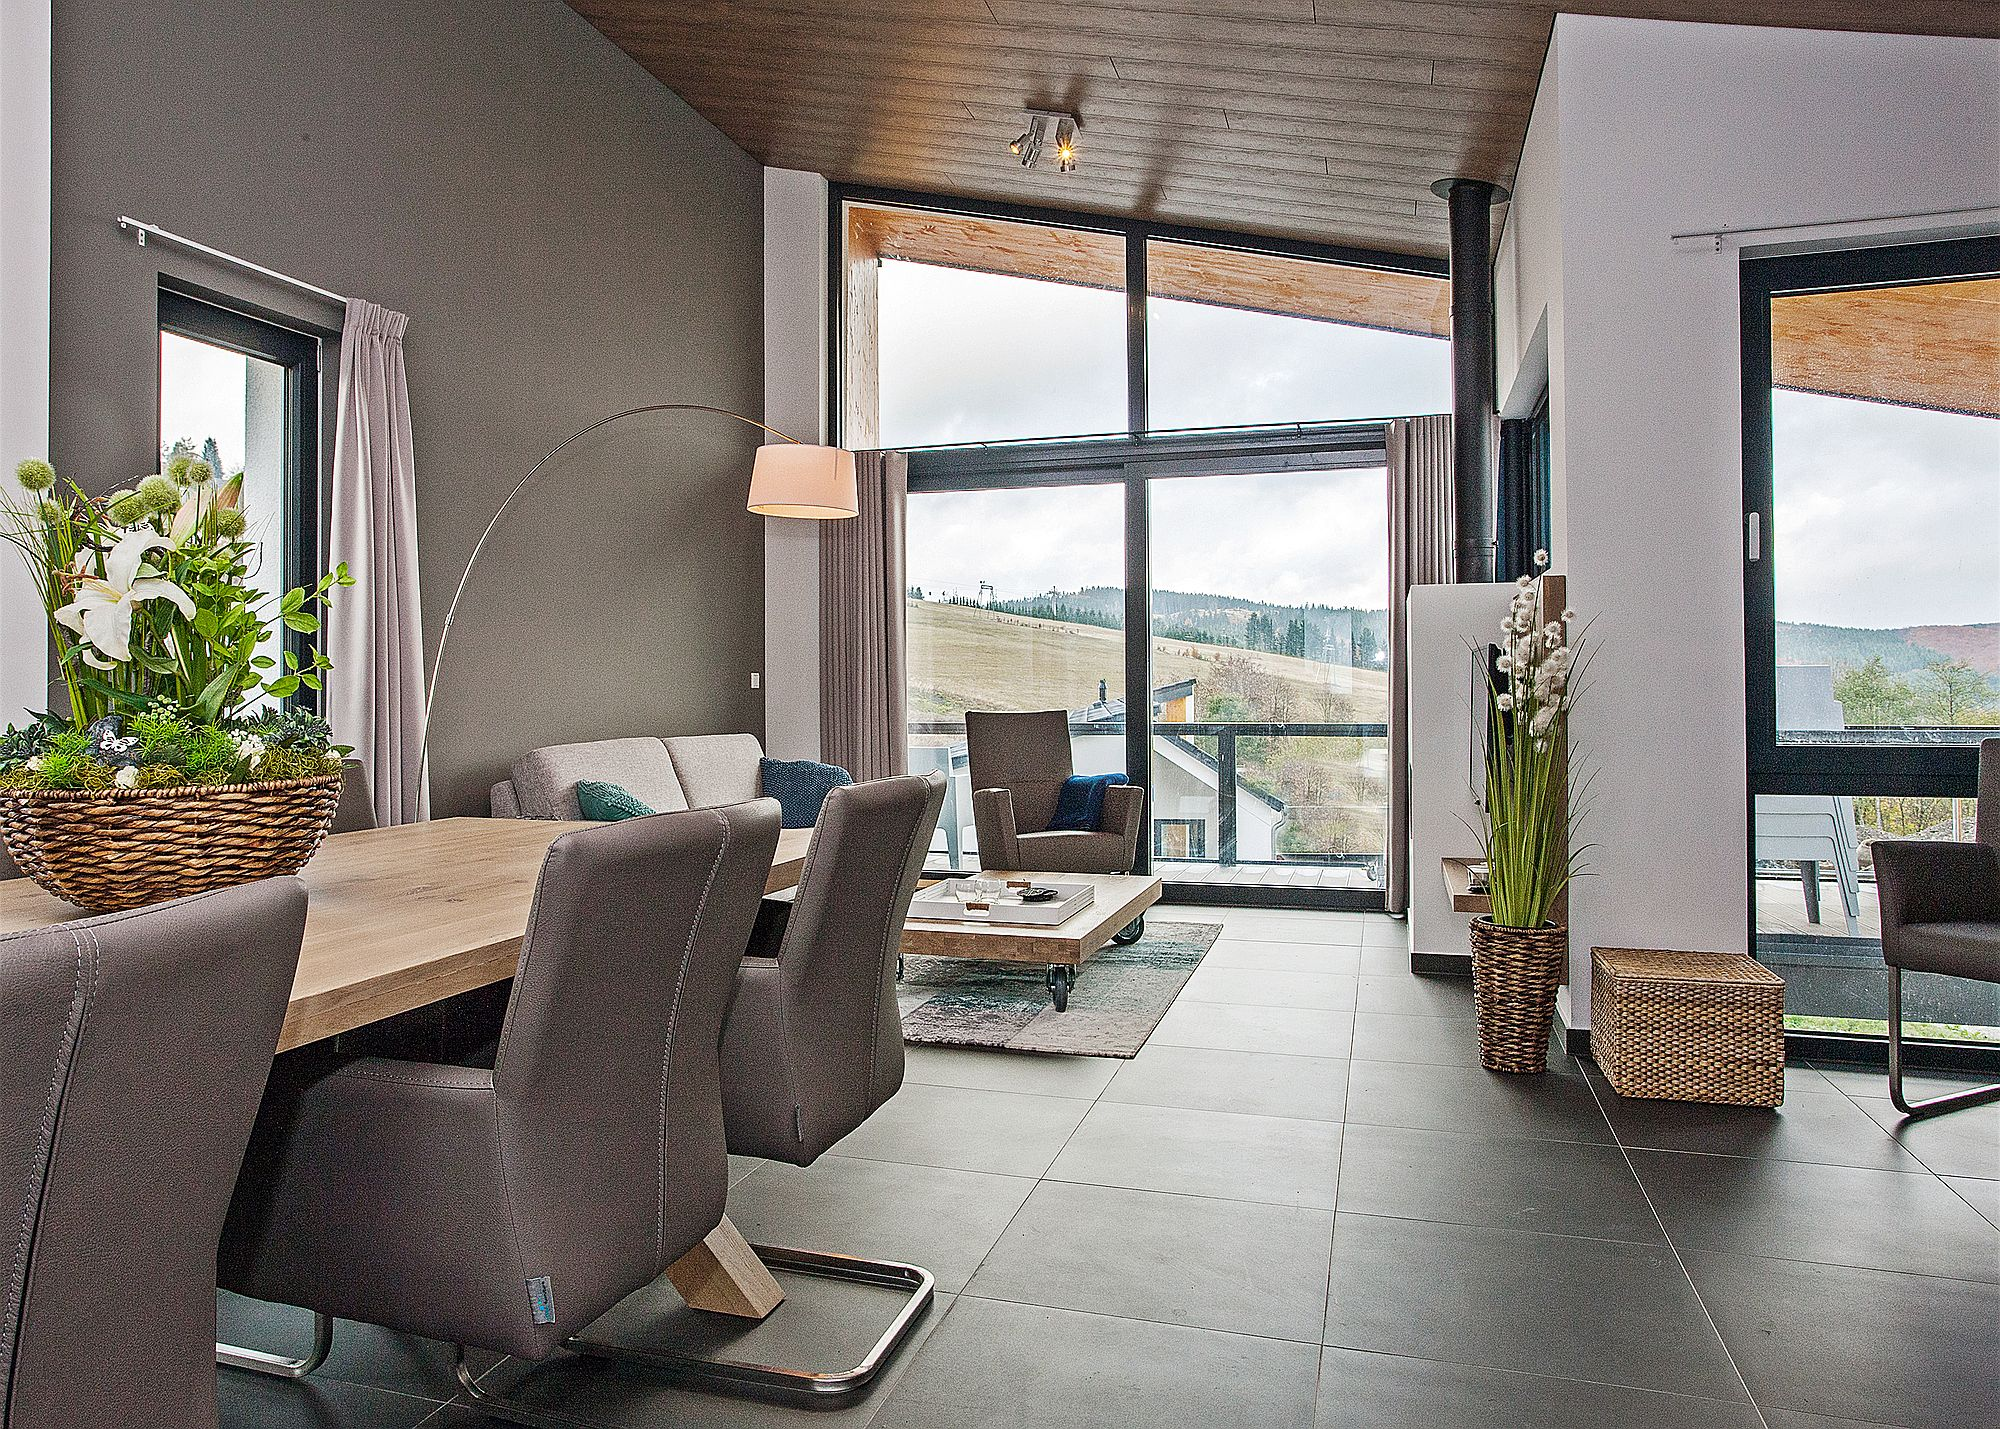 Sloped-roof-of-the-villa-gives-the-interior-a-cool-modern-look